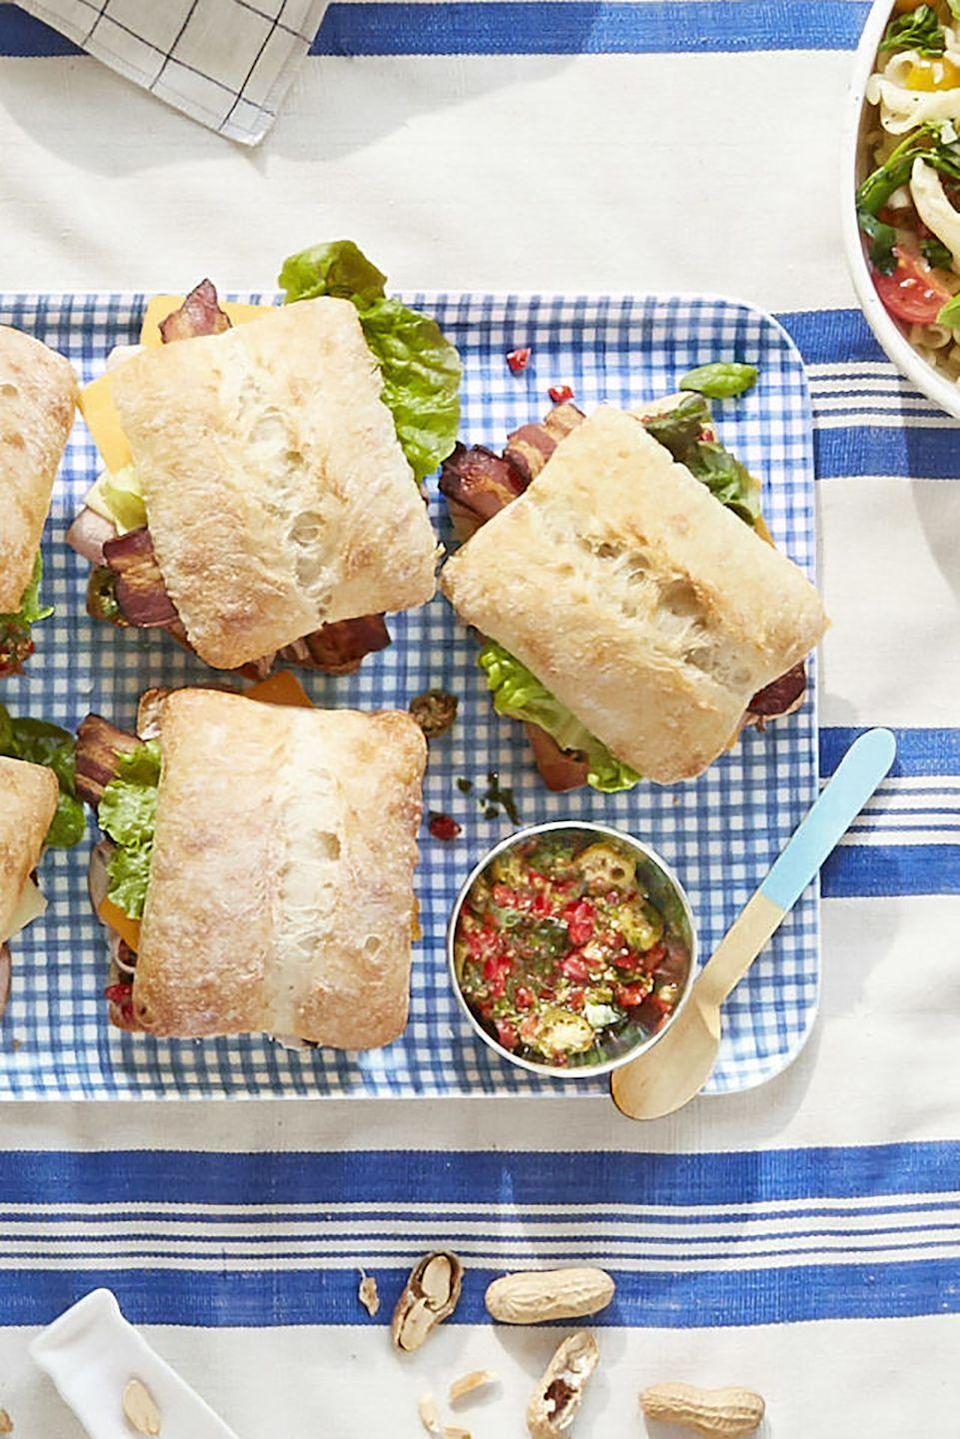 """<p>Topped with turkey bacon and Cheddar cheese, this sweet and salty sandwich is super satisfying.</p><p><strong><a href=""""https://www.countryliving.com/food-drinks/recipes/a42460/pimiento-salad-club-sandwiches-recipe/"""" rel=""""nofollow noopener"""" target=""""_blank"""" data-ylk=""""slk:Get the recipe"""" class=""""link rapid-noclick-resp"""">Get the recipe</a>.</strong> </p>"""